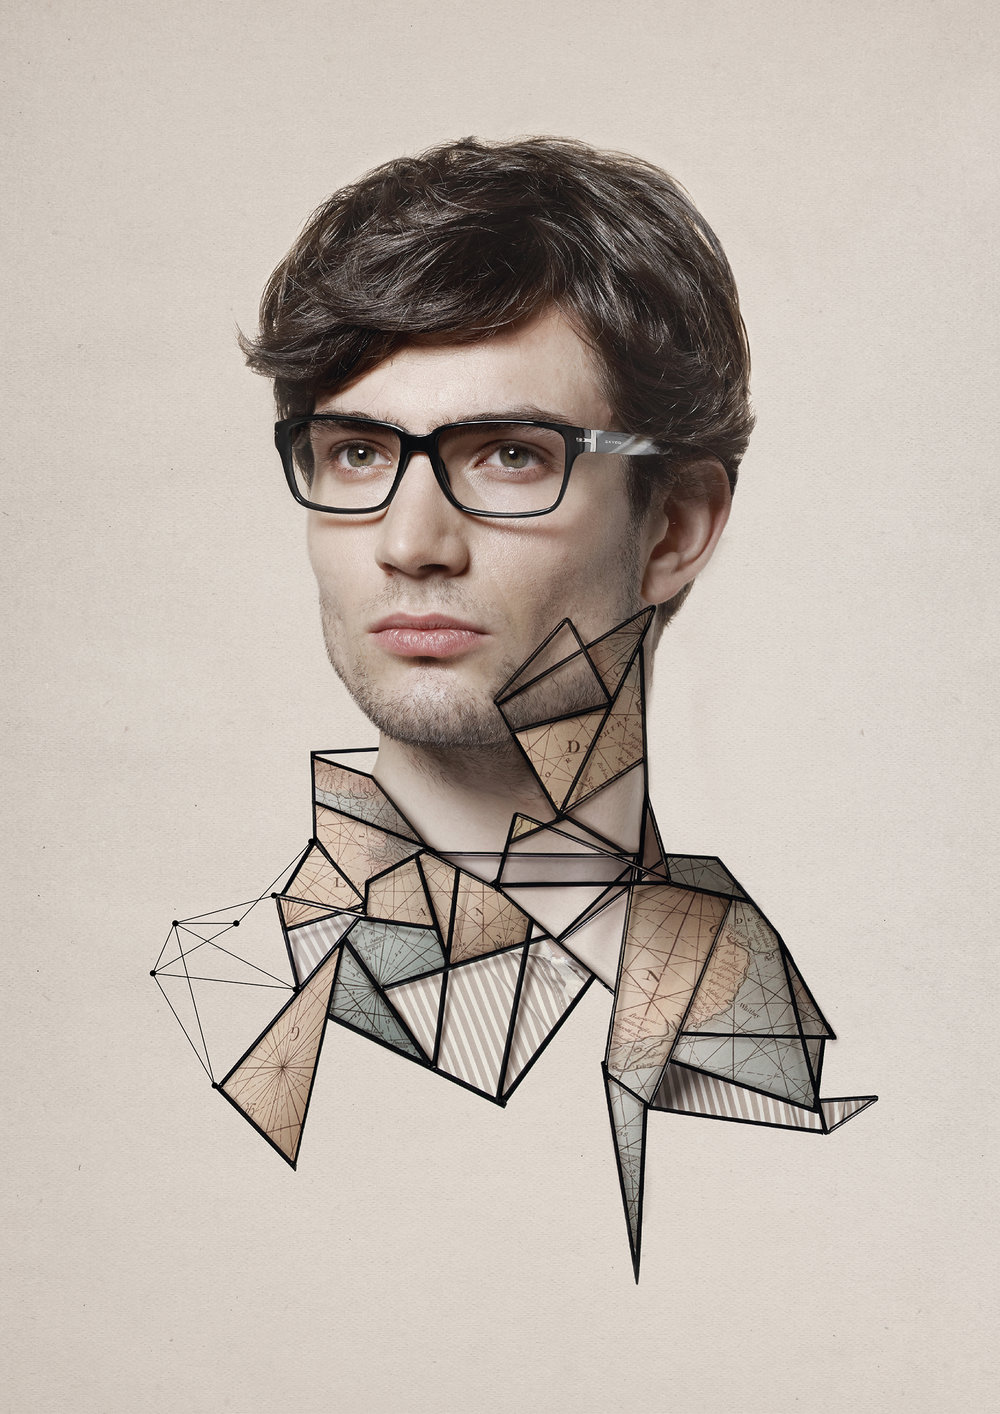 Poster for the eyewear brand Oxydo.  View more